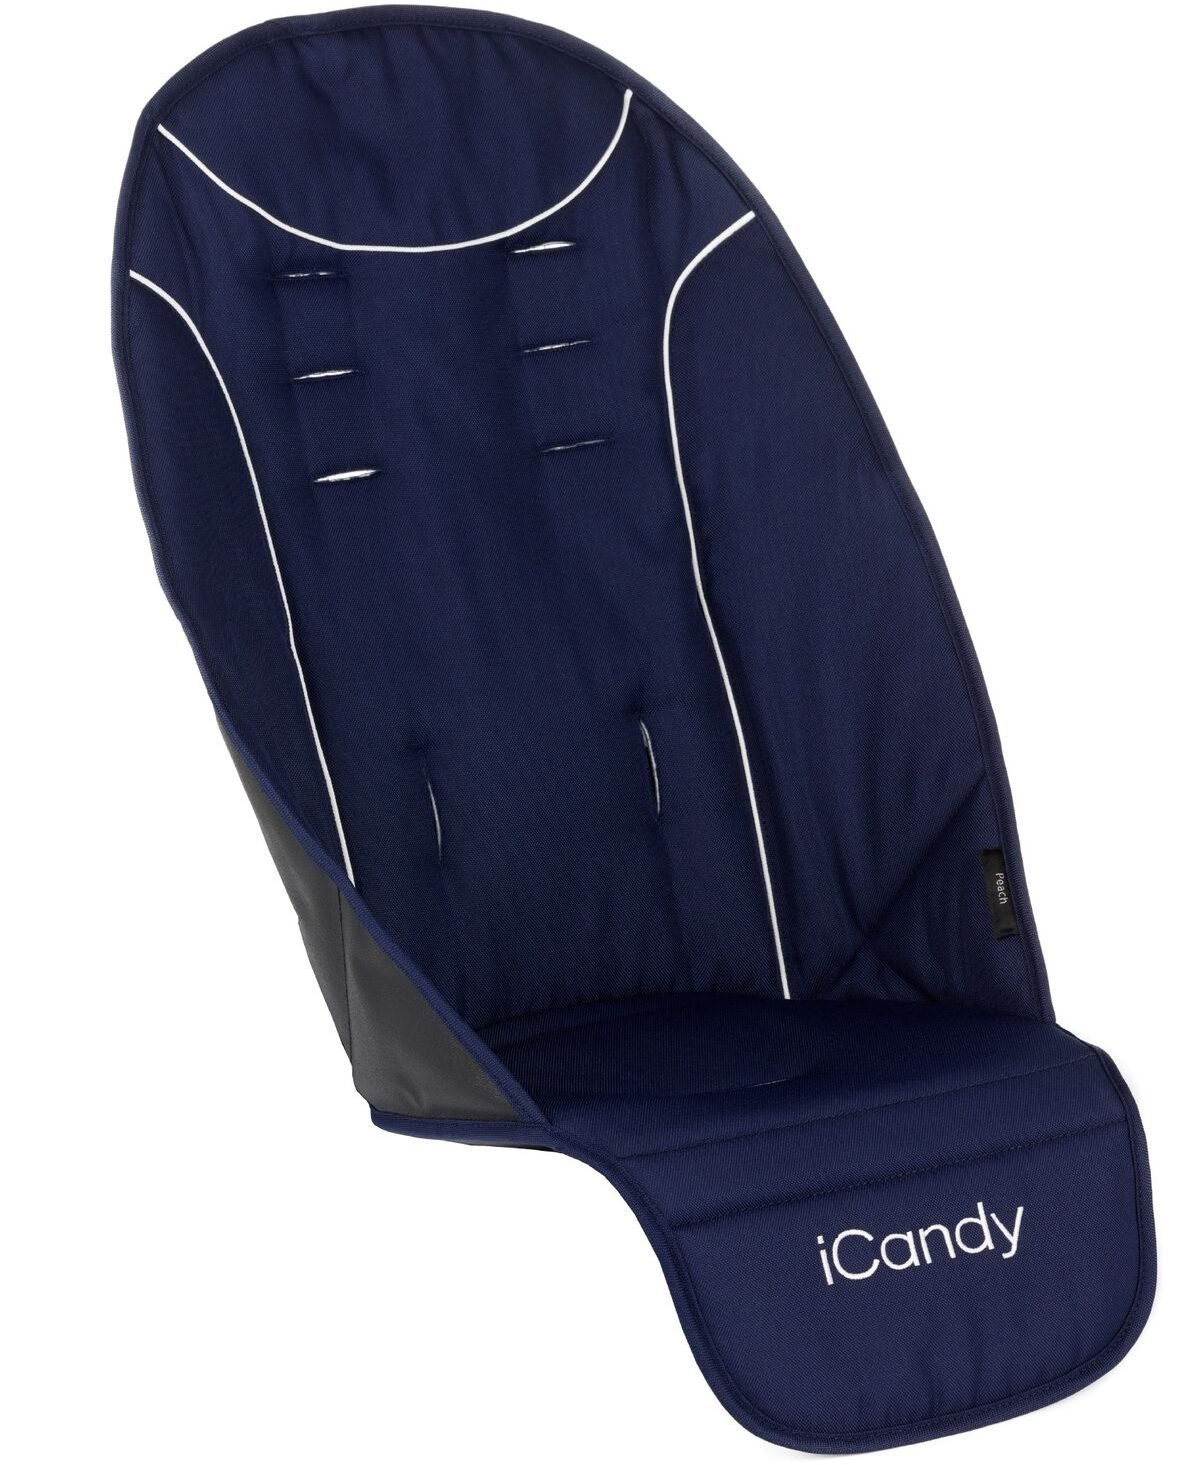 iCandy Peach Universal Liner